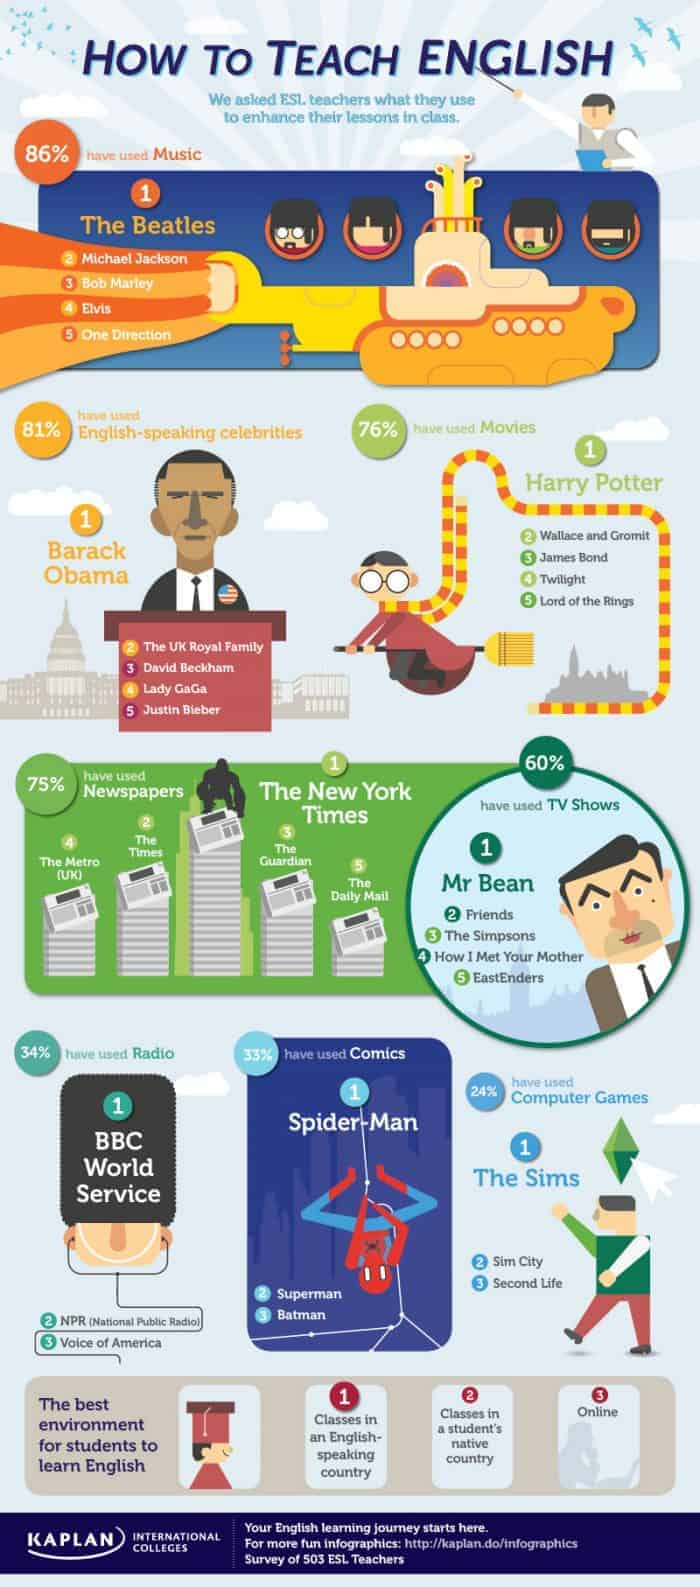 howtoteach_kaplan_infographic1